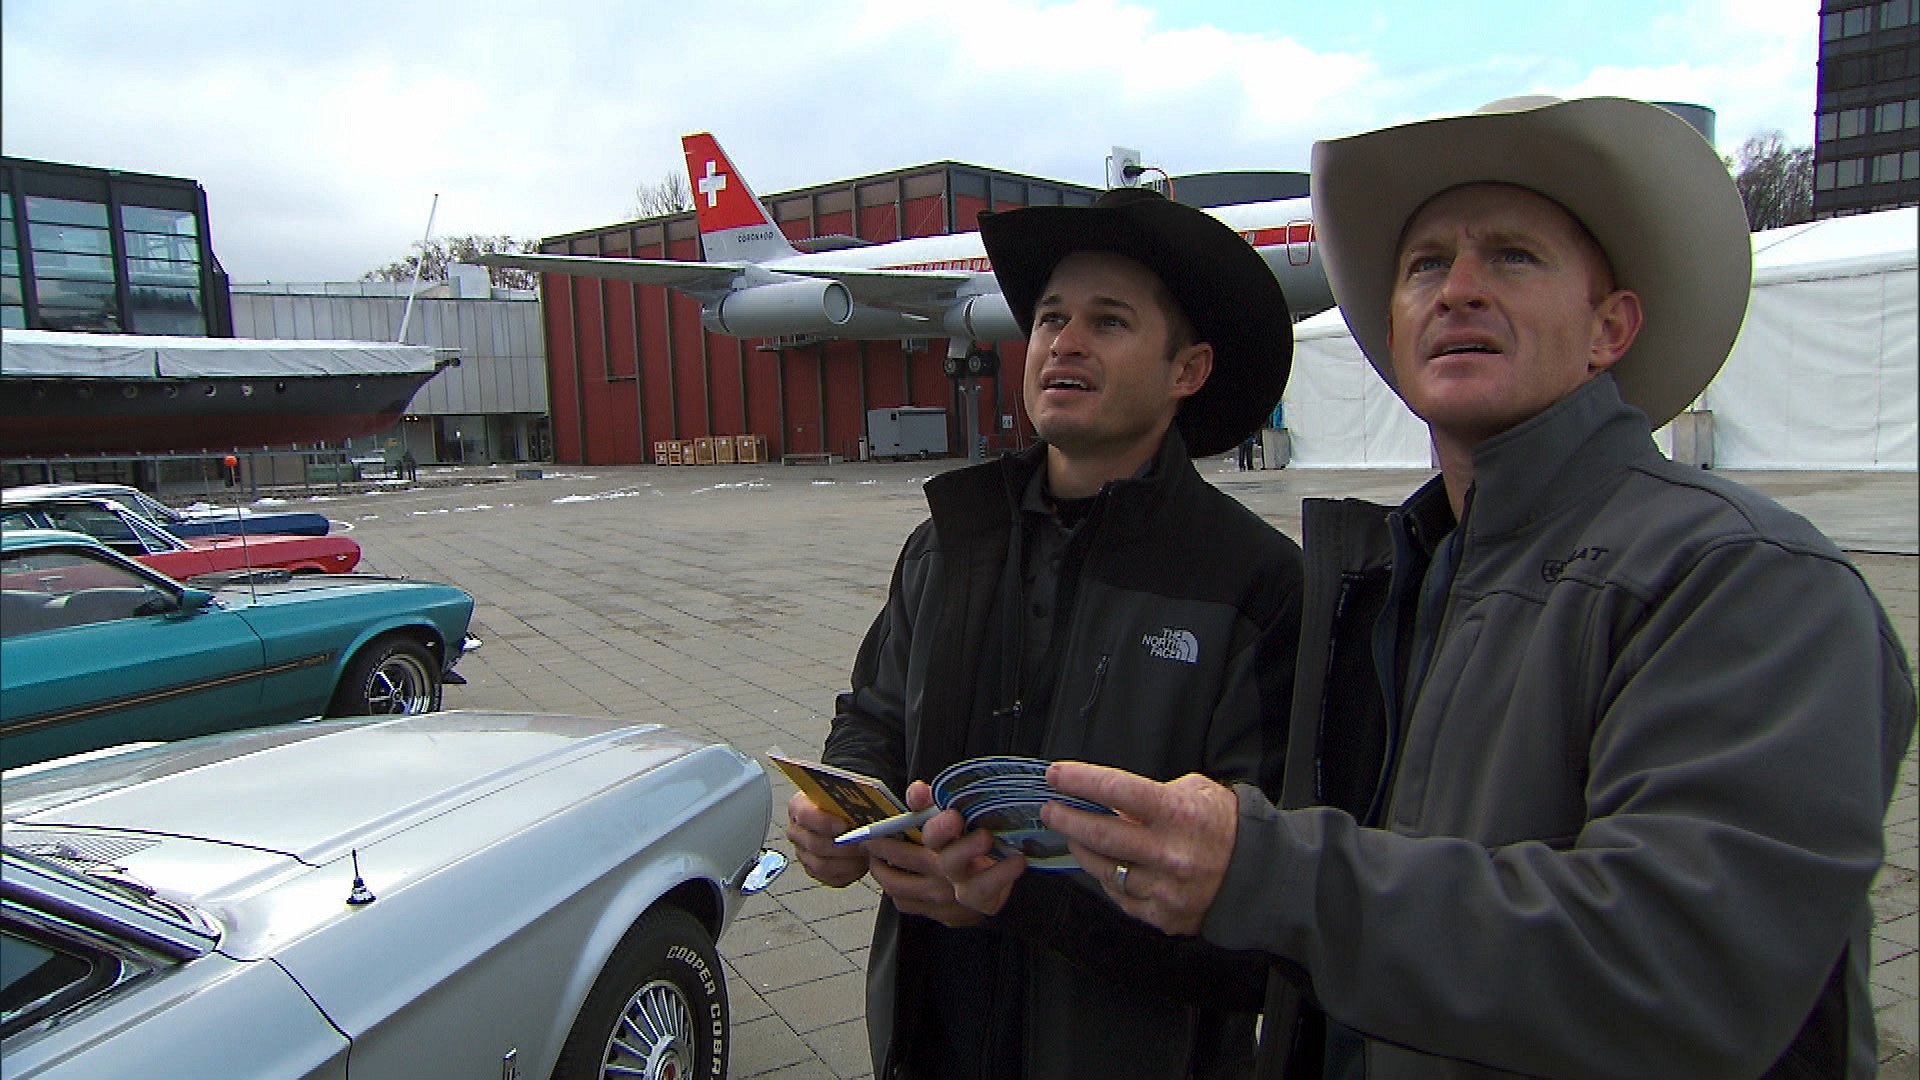 Cowboy brothers in Season 24 Episode 9